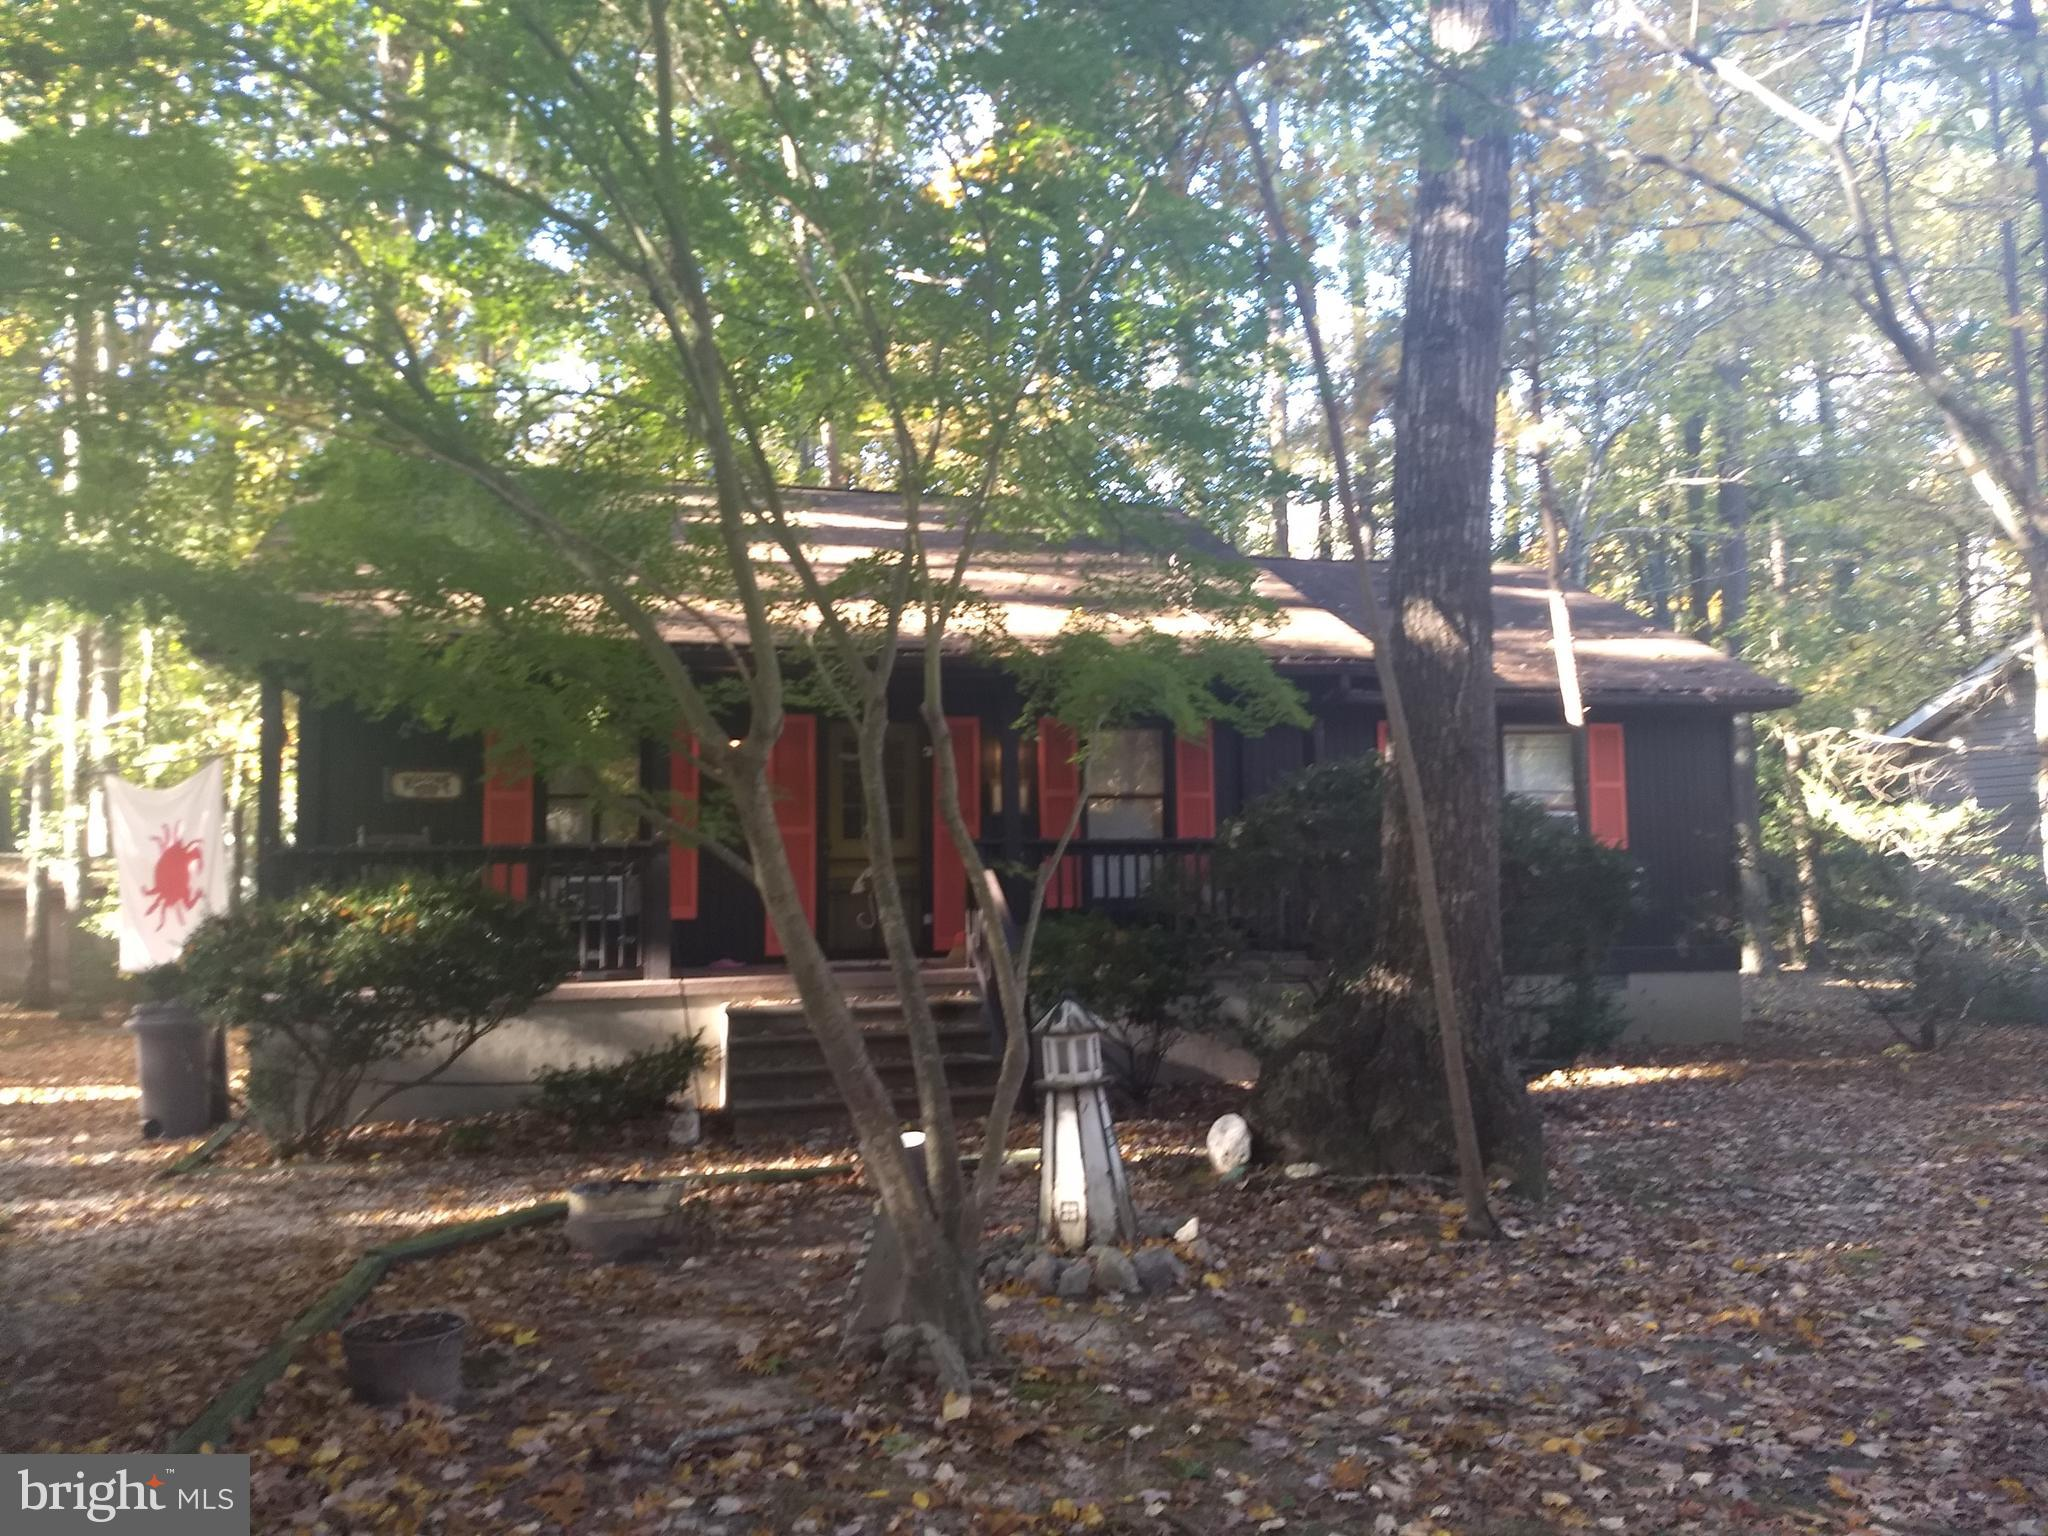 63 White Horse Dr, Ocean Pines, MD, 21811